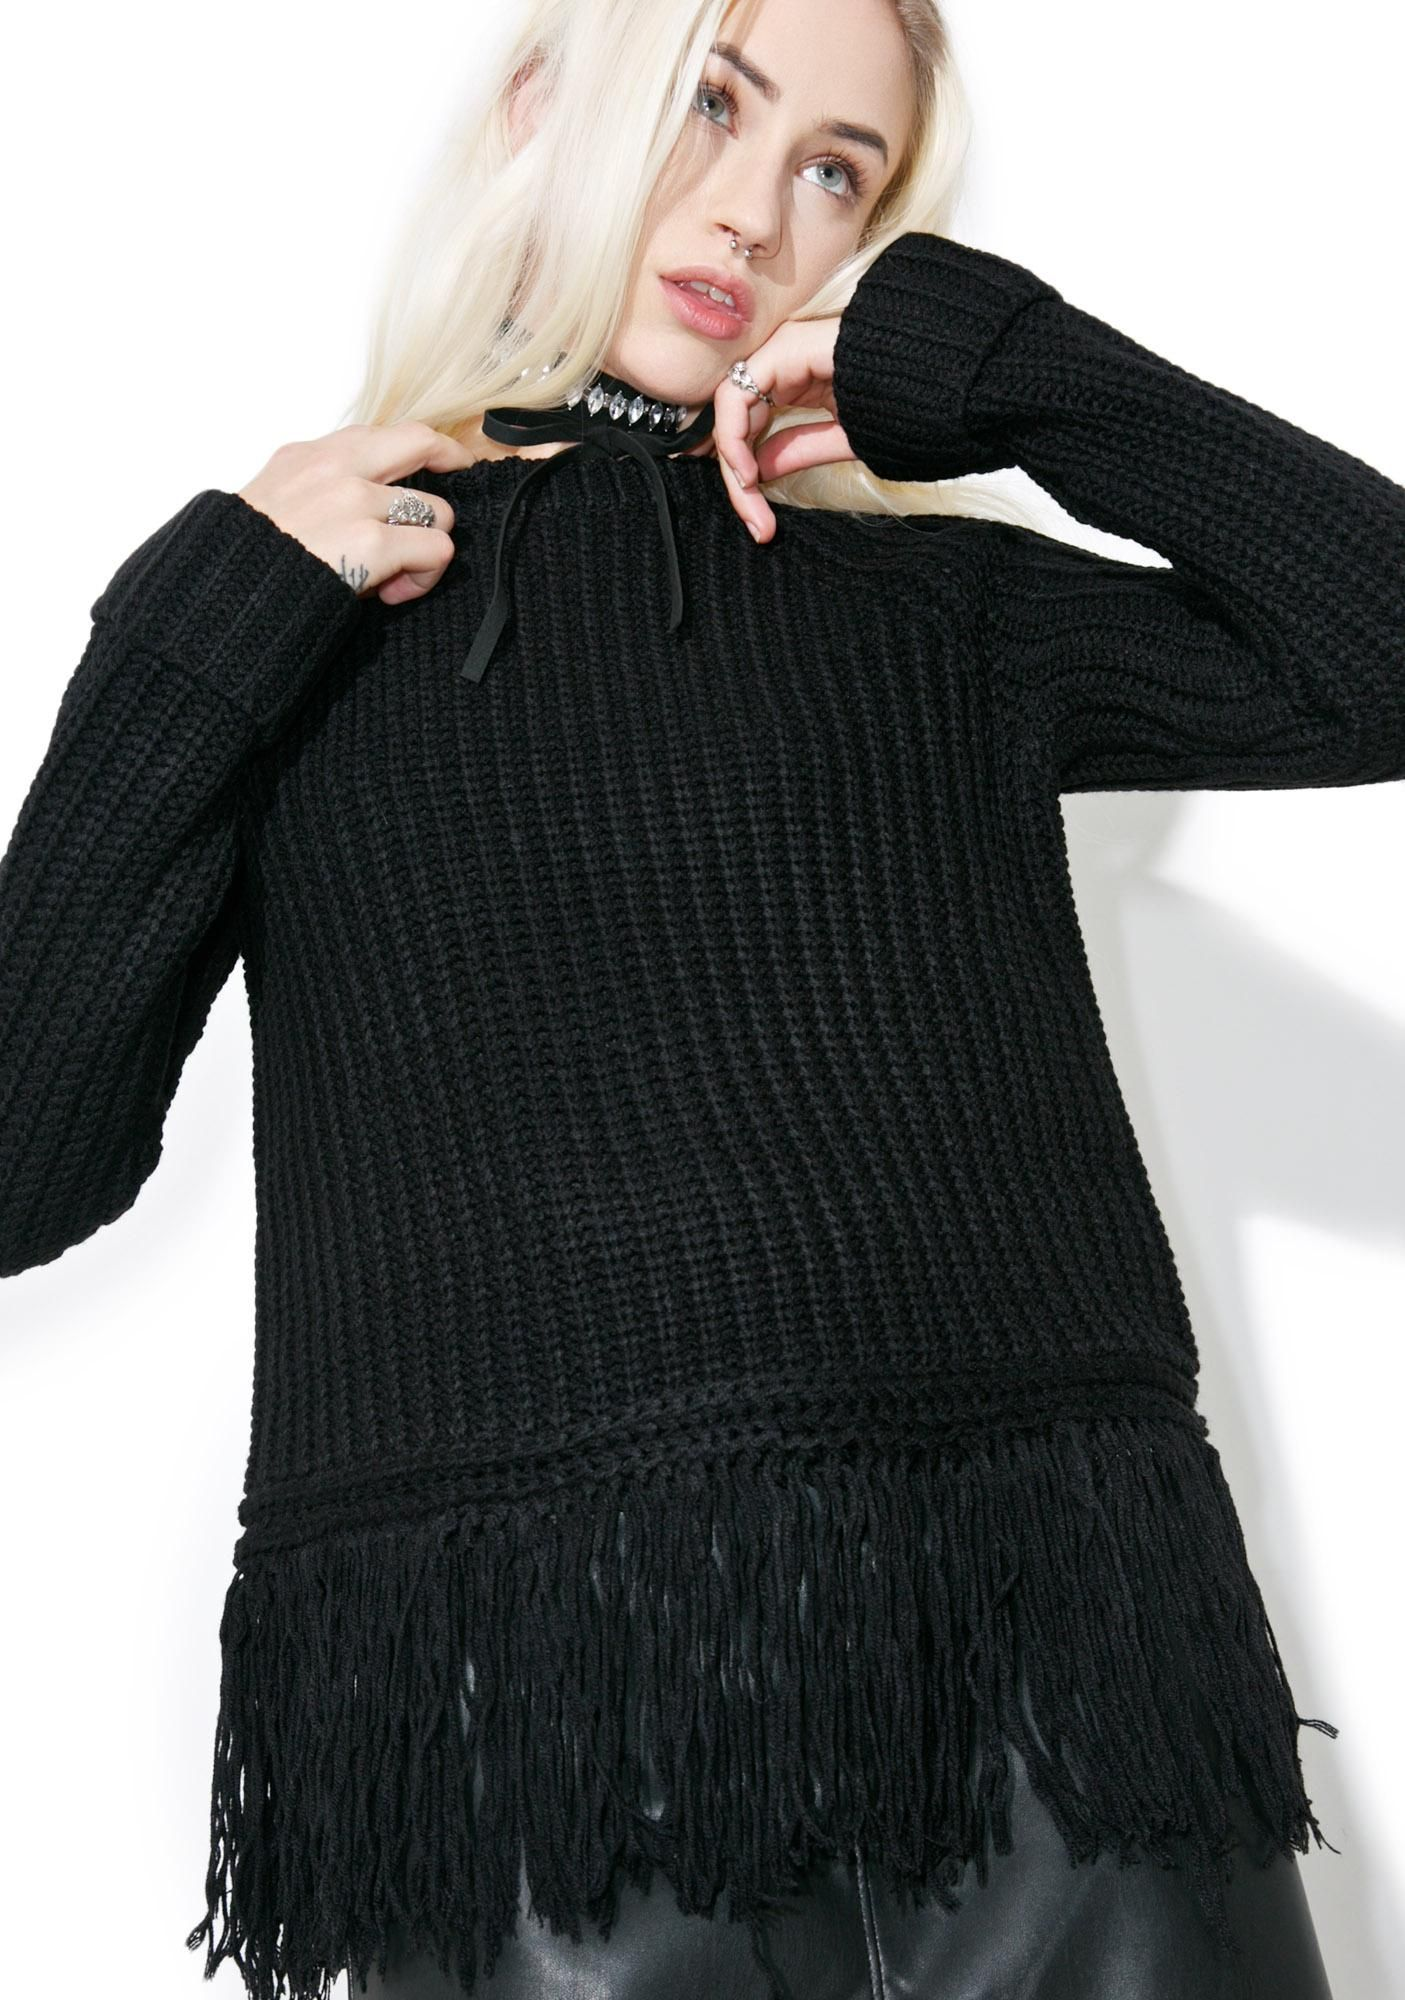 4488071cbc8f Telepathy Fringe Sweater we feel a real connection to ya